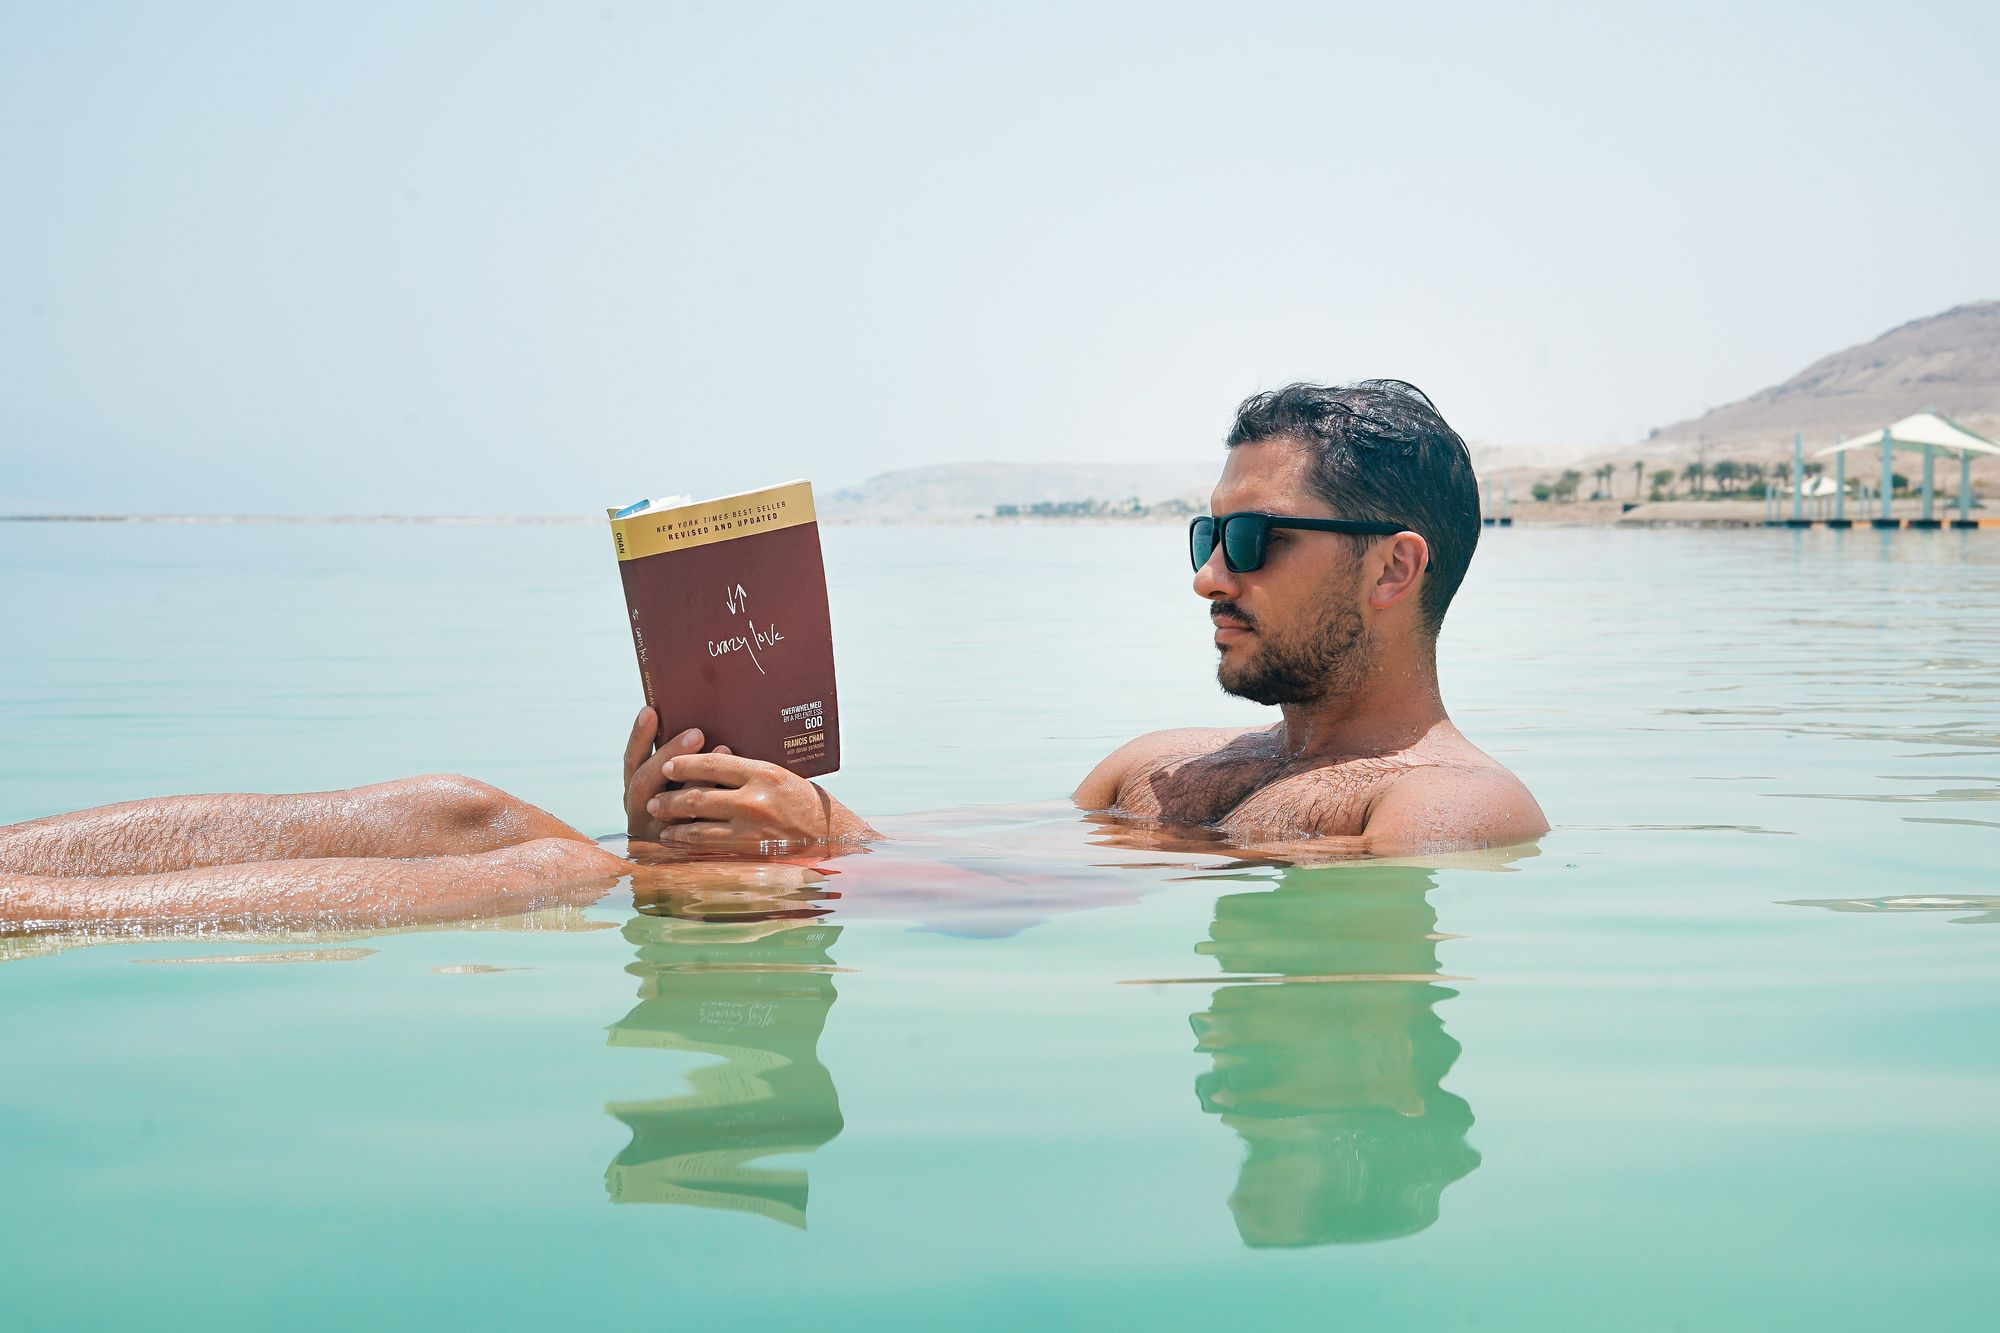 Man floating in the water with a book